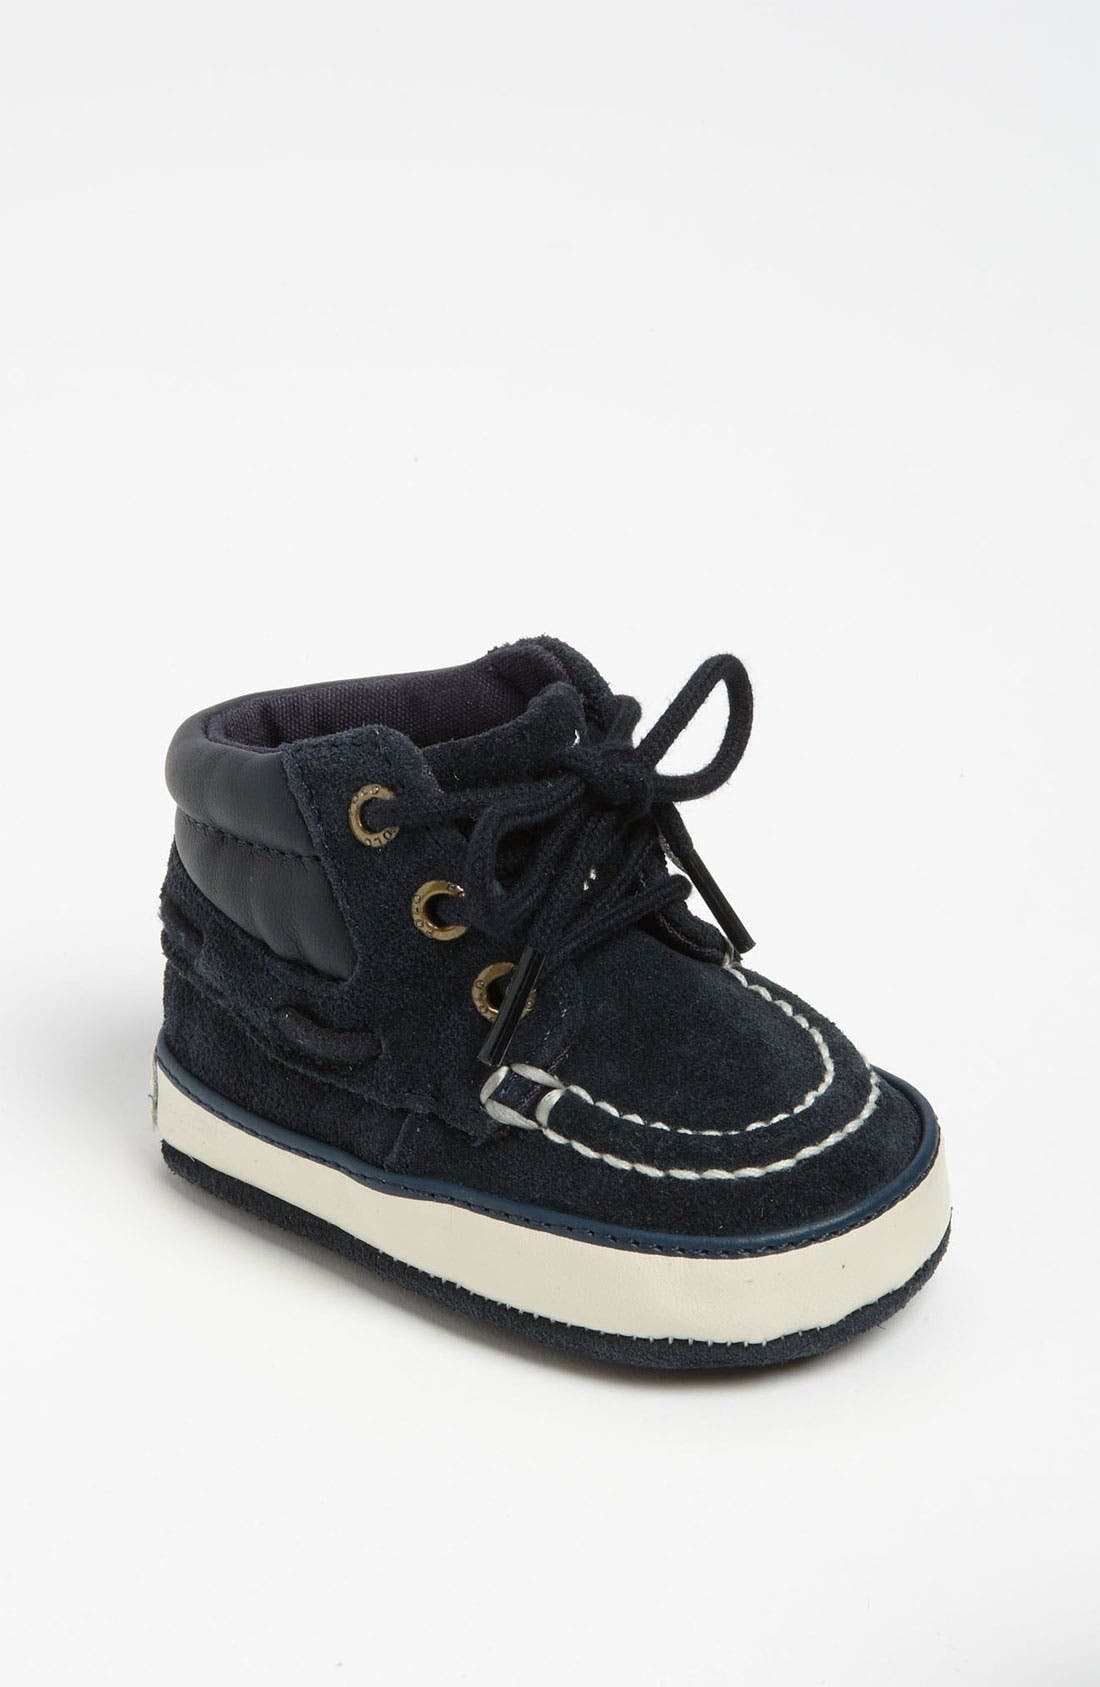 Alternate Image 1 Selected - Ralph Lauren Layette 'Sanders' Crib Shoe (Baby)